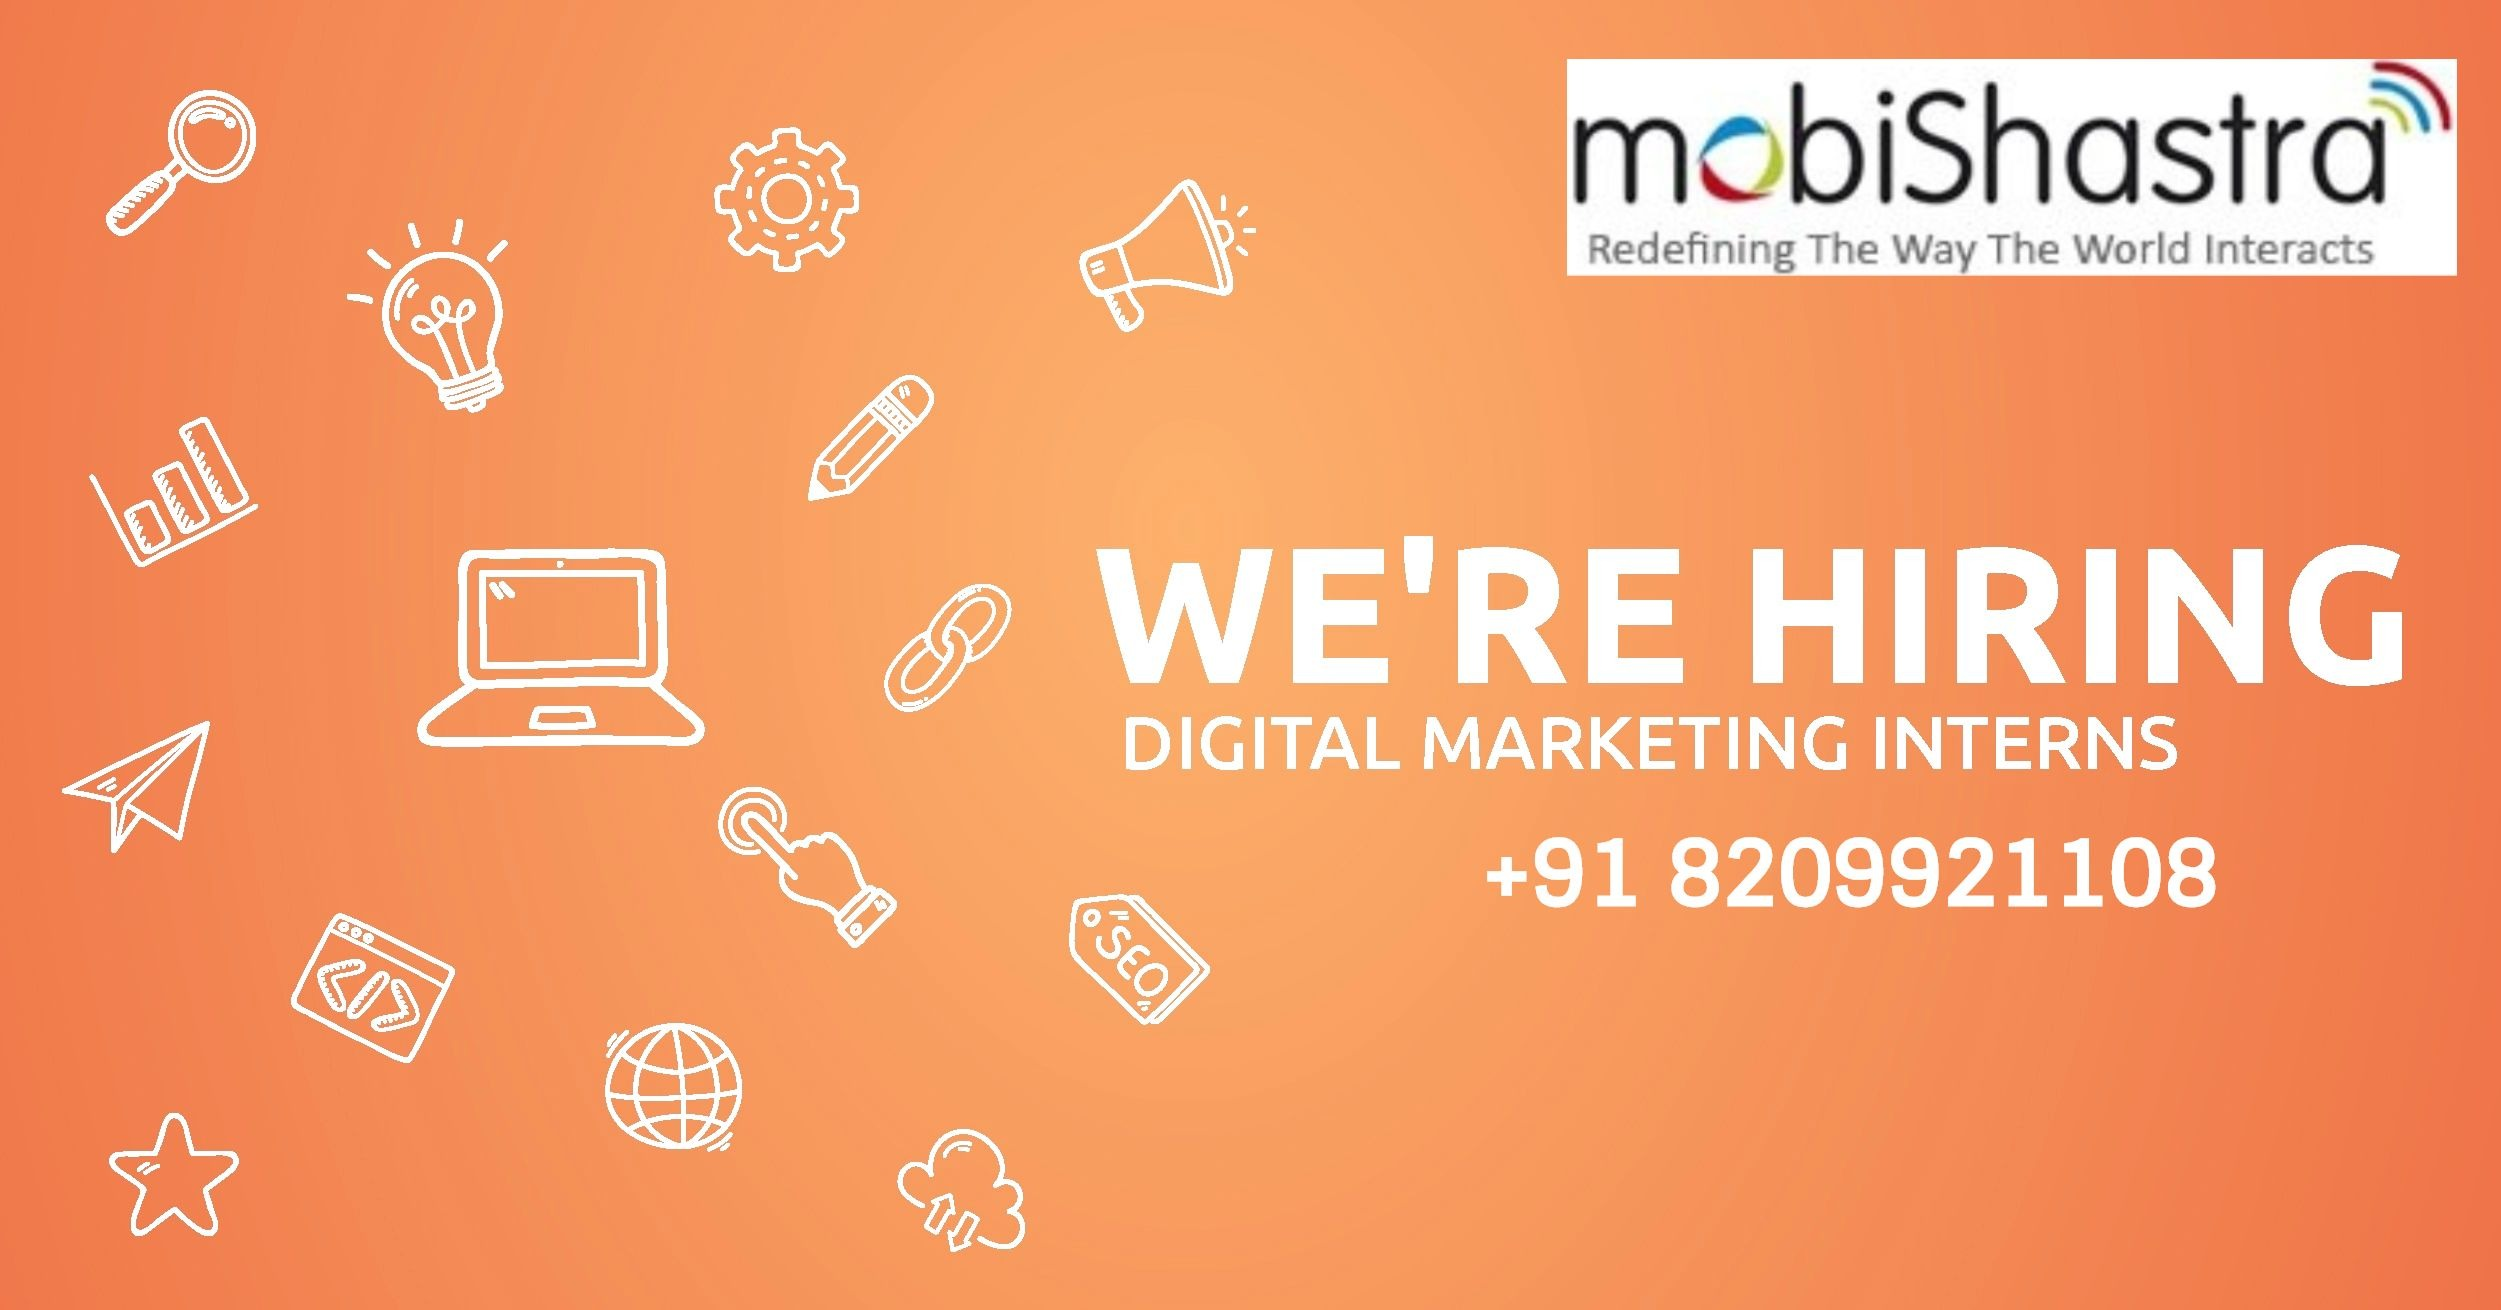 Digital Marketing Intern Job/Vacancy at Mobishastra Technologies